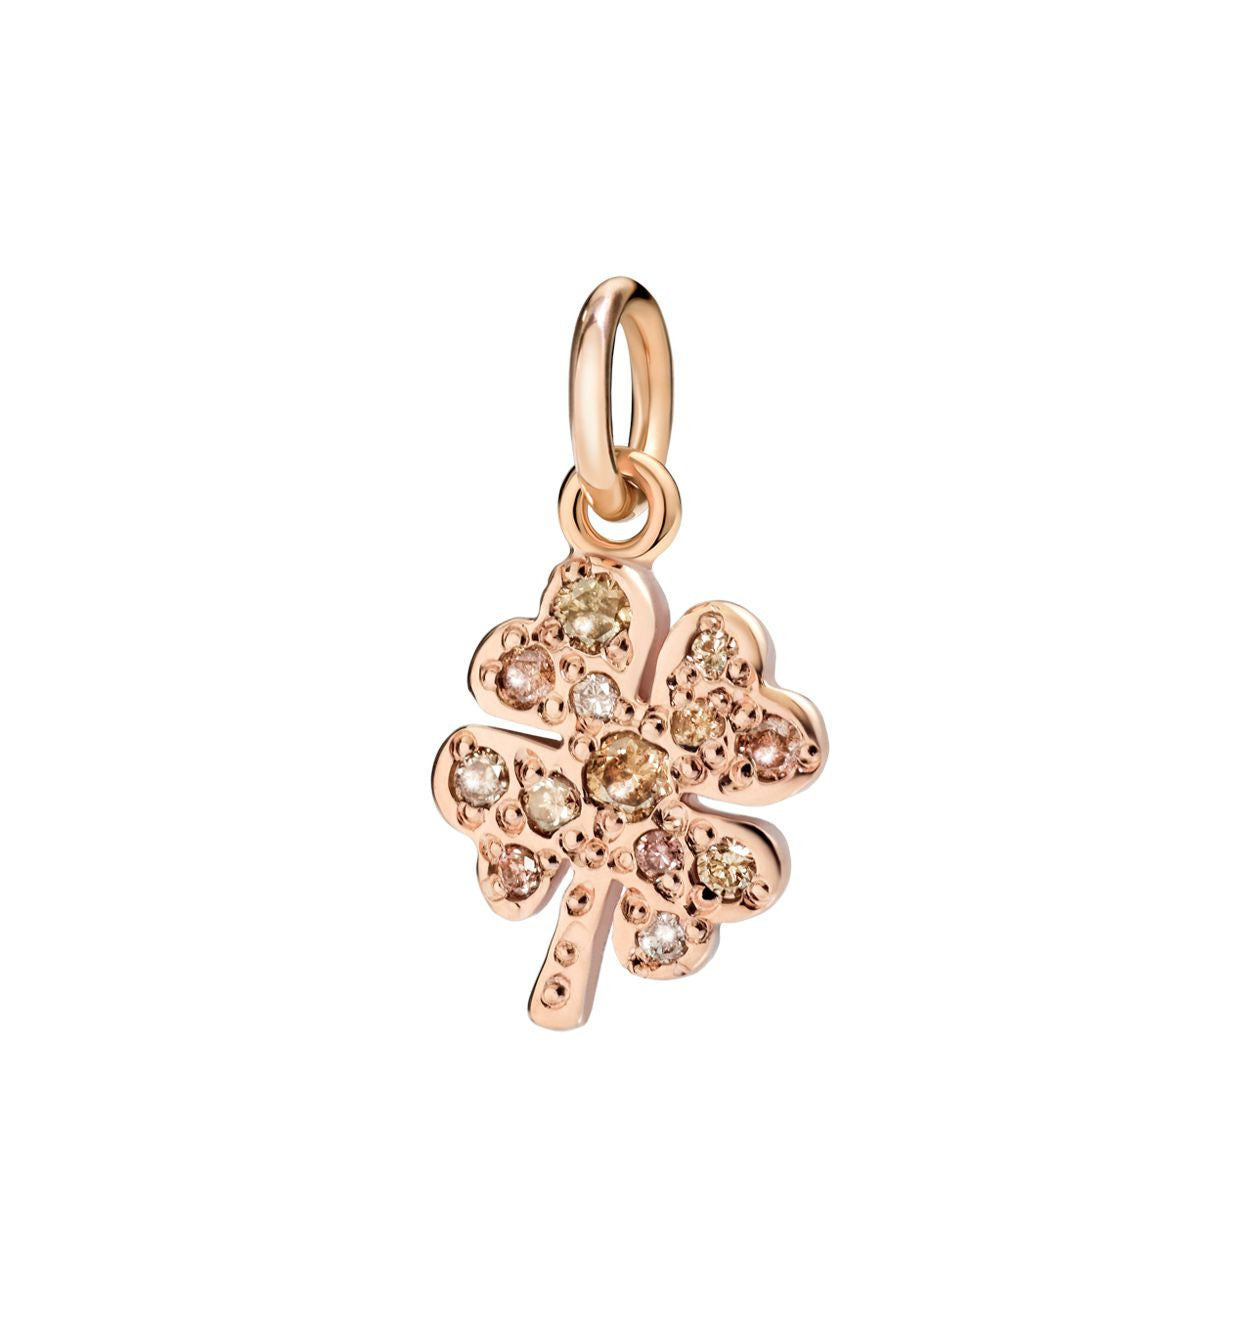 DoDo Four Leaf Clover in 9k Rose Gold with Brown Diamonds - Orsini Jewellers NZ